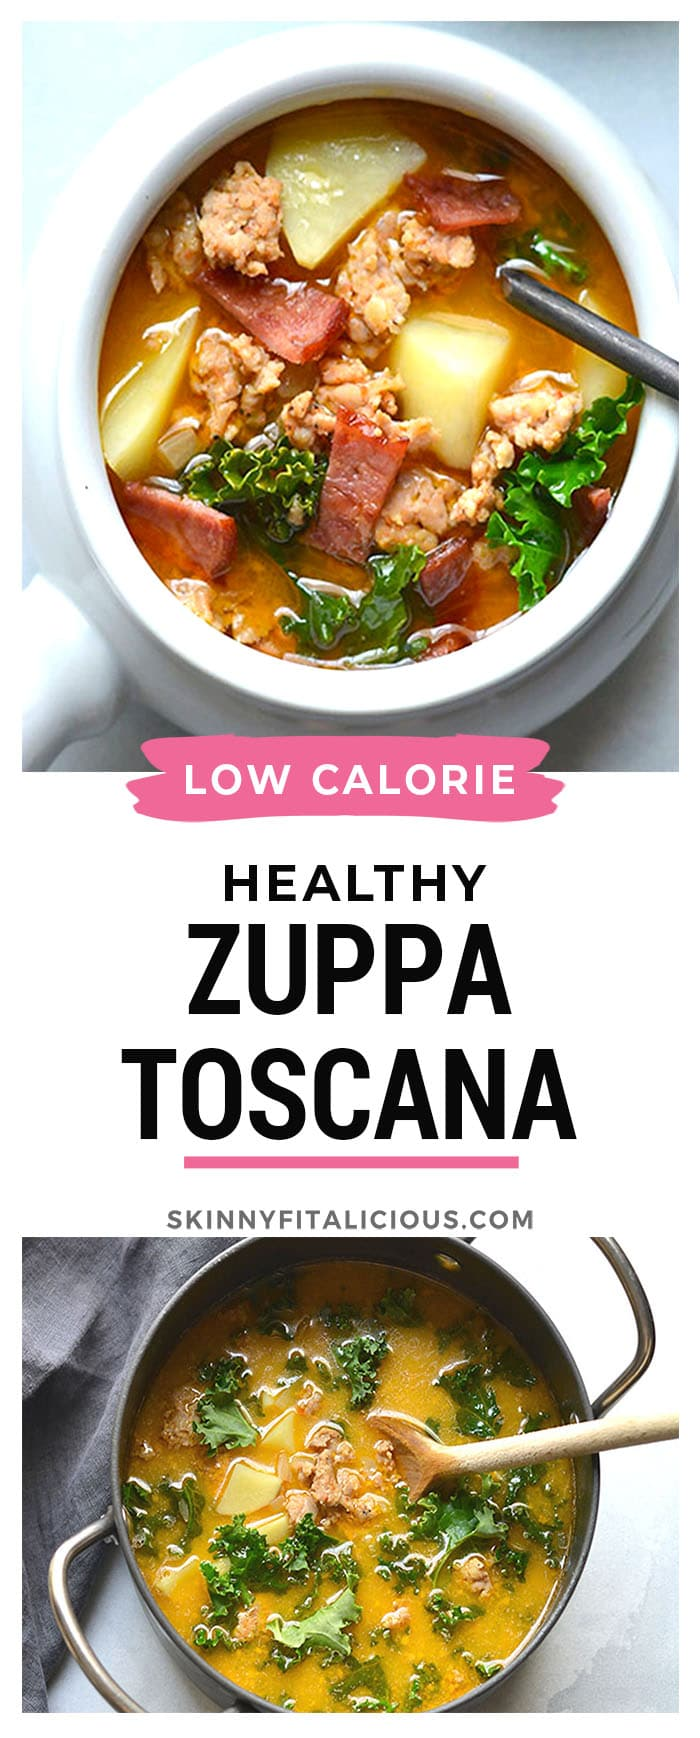 Skinny Zuppa Toscana! This lightened up twist is made with lightened up ingredients and insanely delicious! Creamy, savory and well balanced for a yummy winter meal.